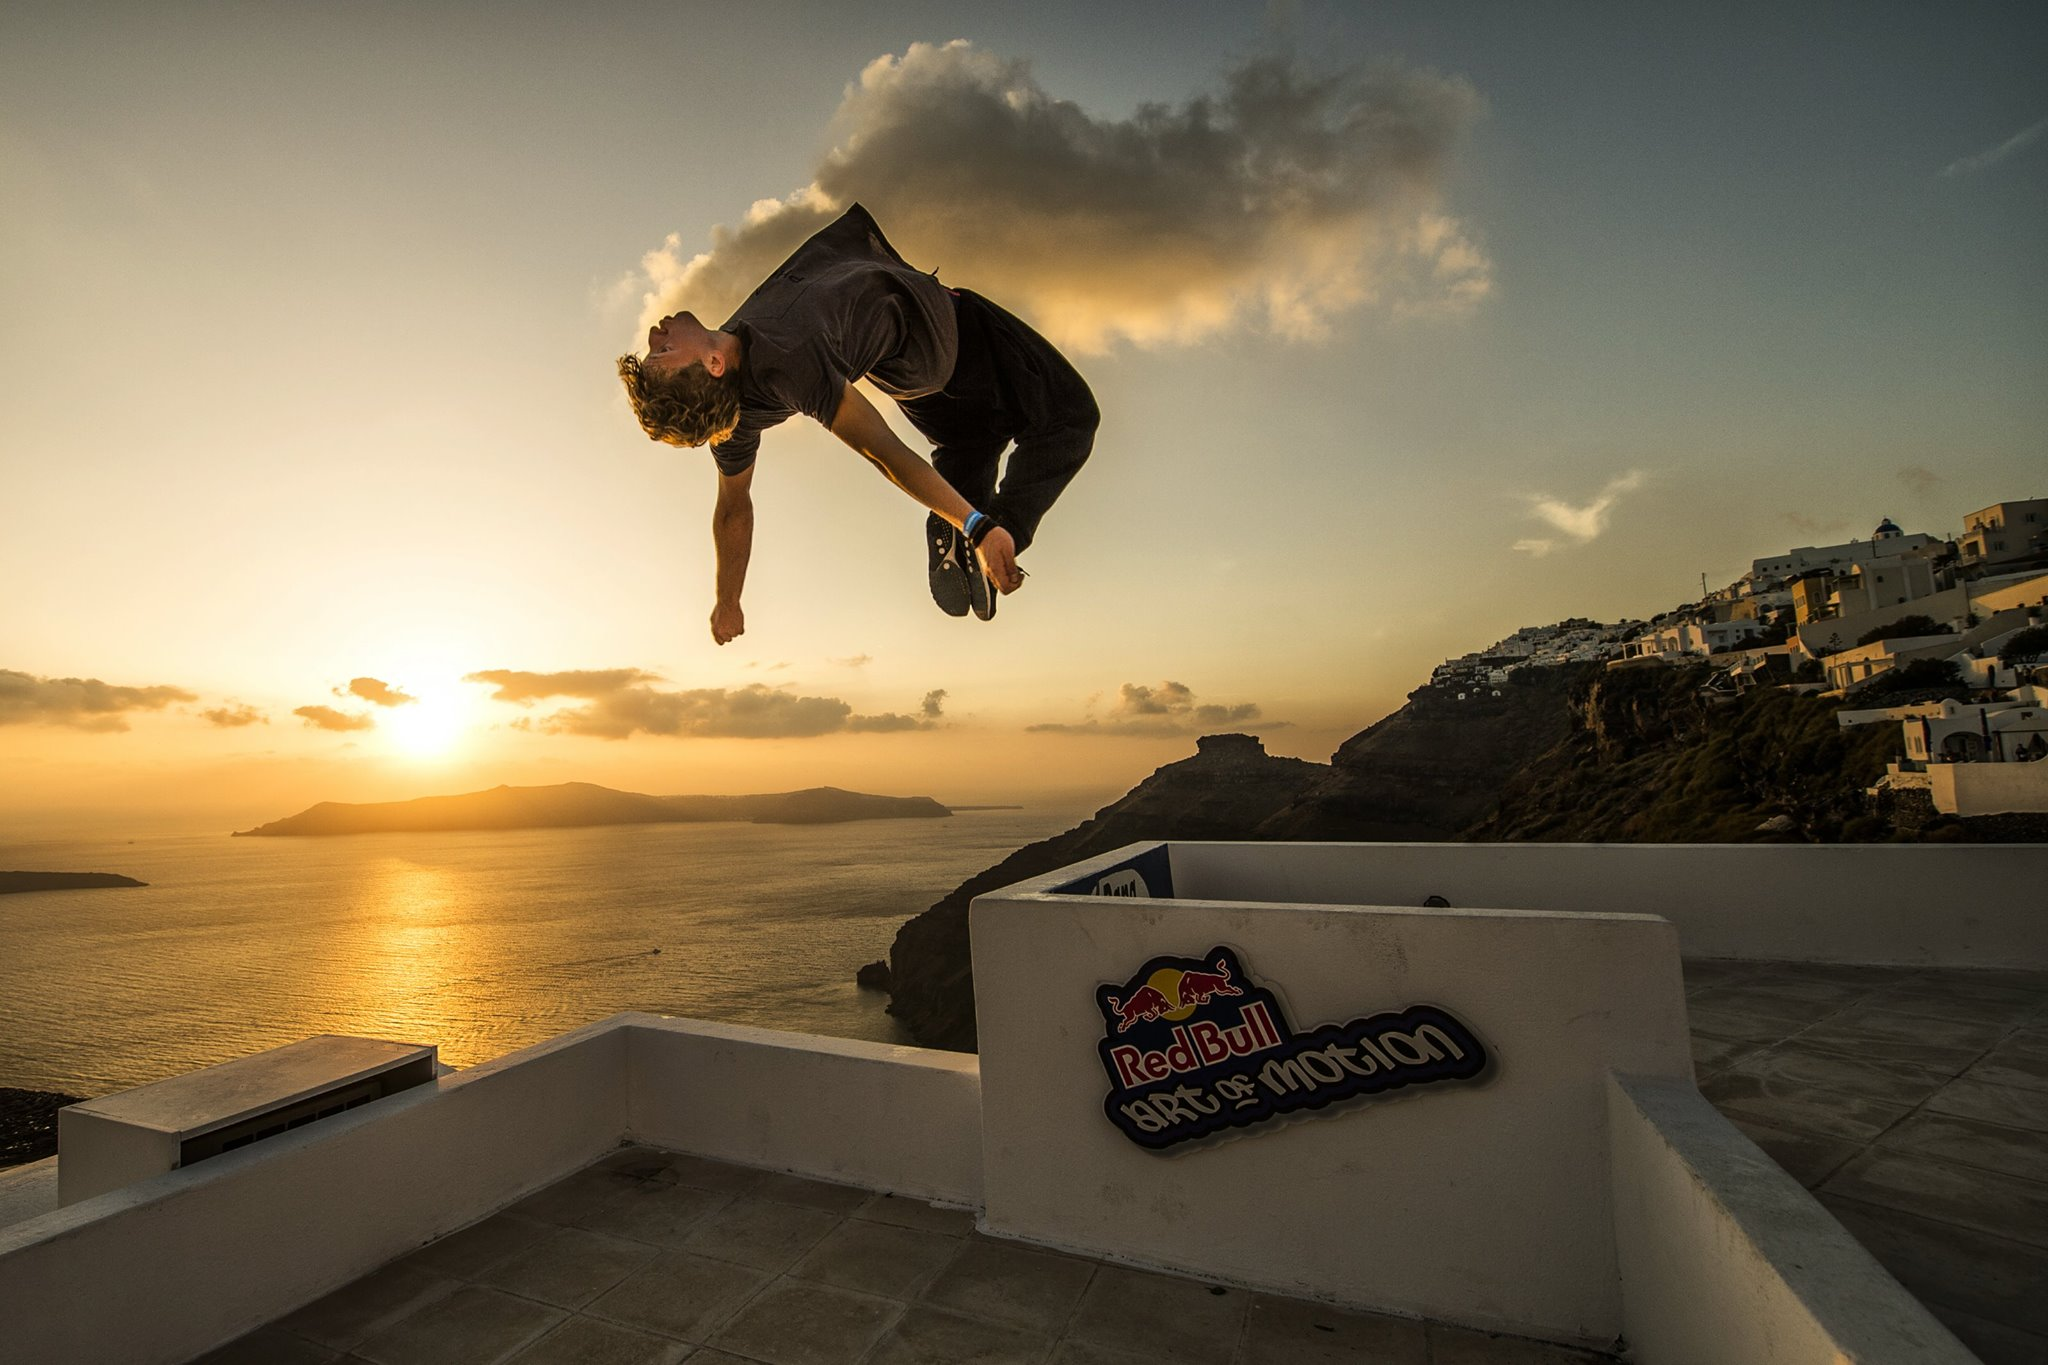 redbull art of motion 2014